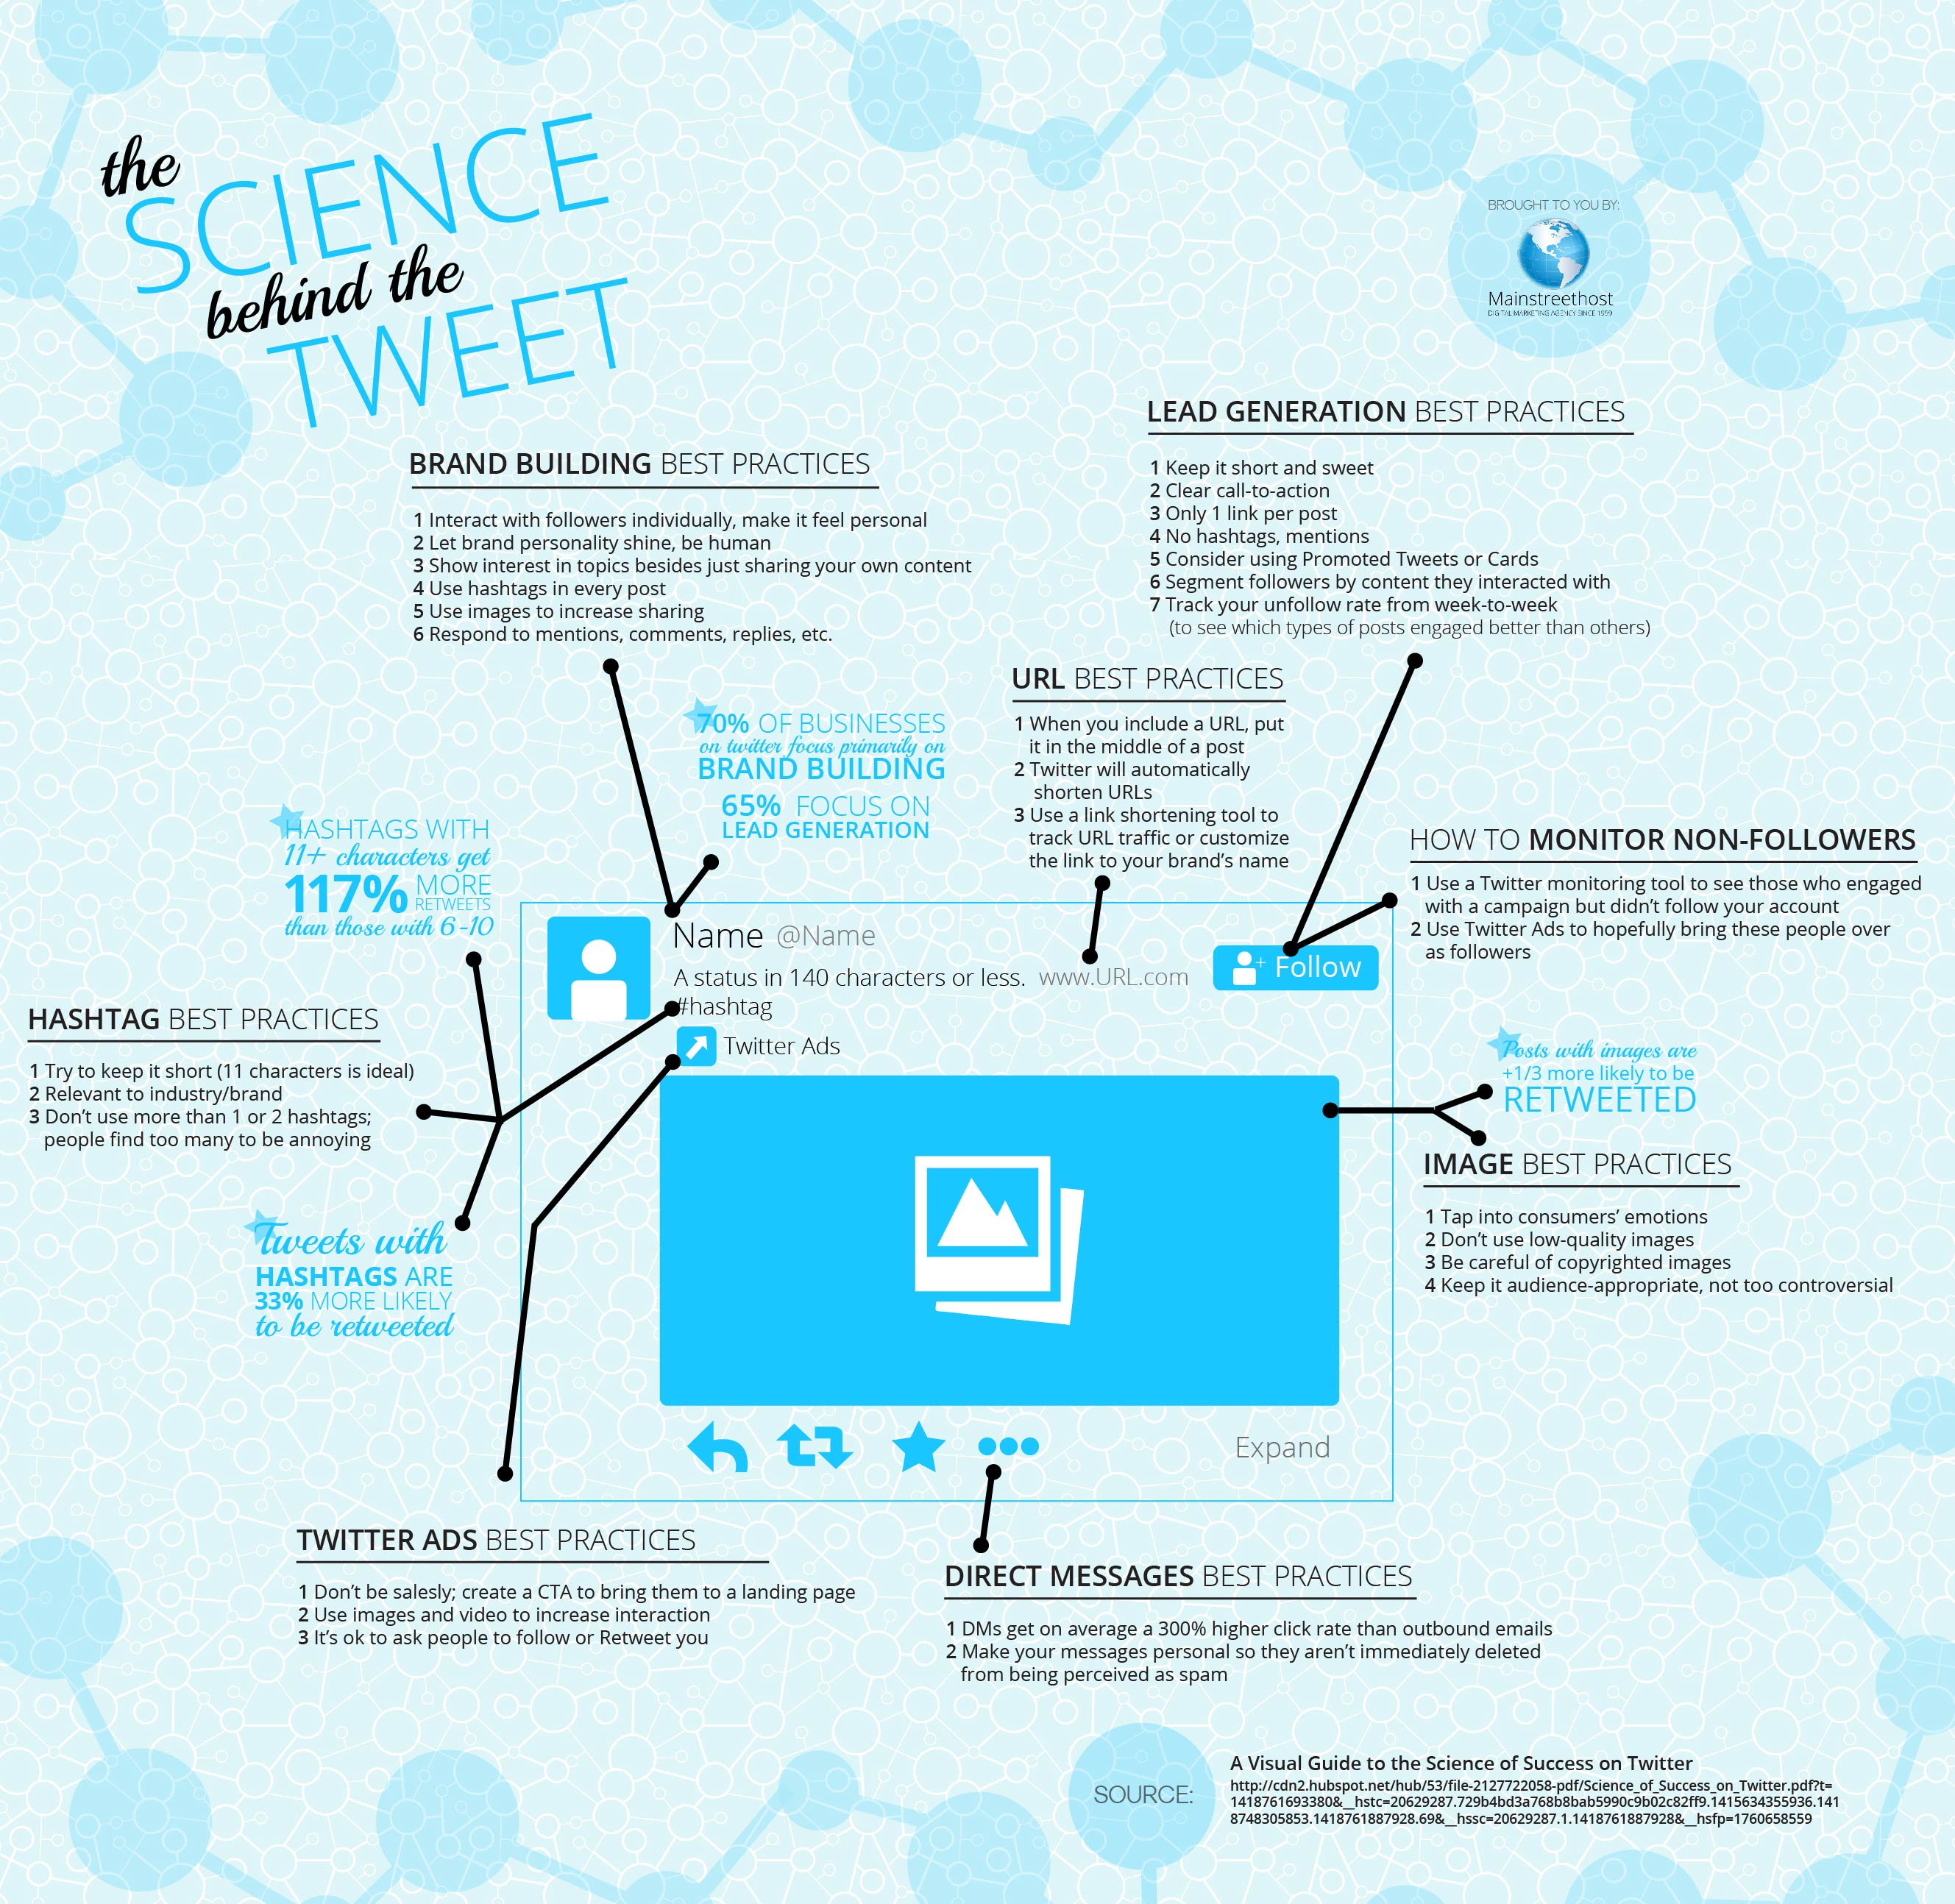 The Science Behind the Tweet